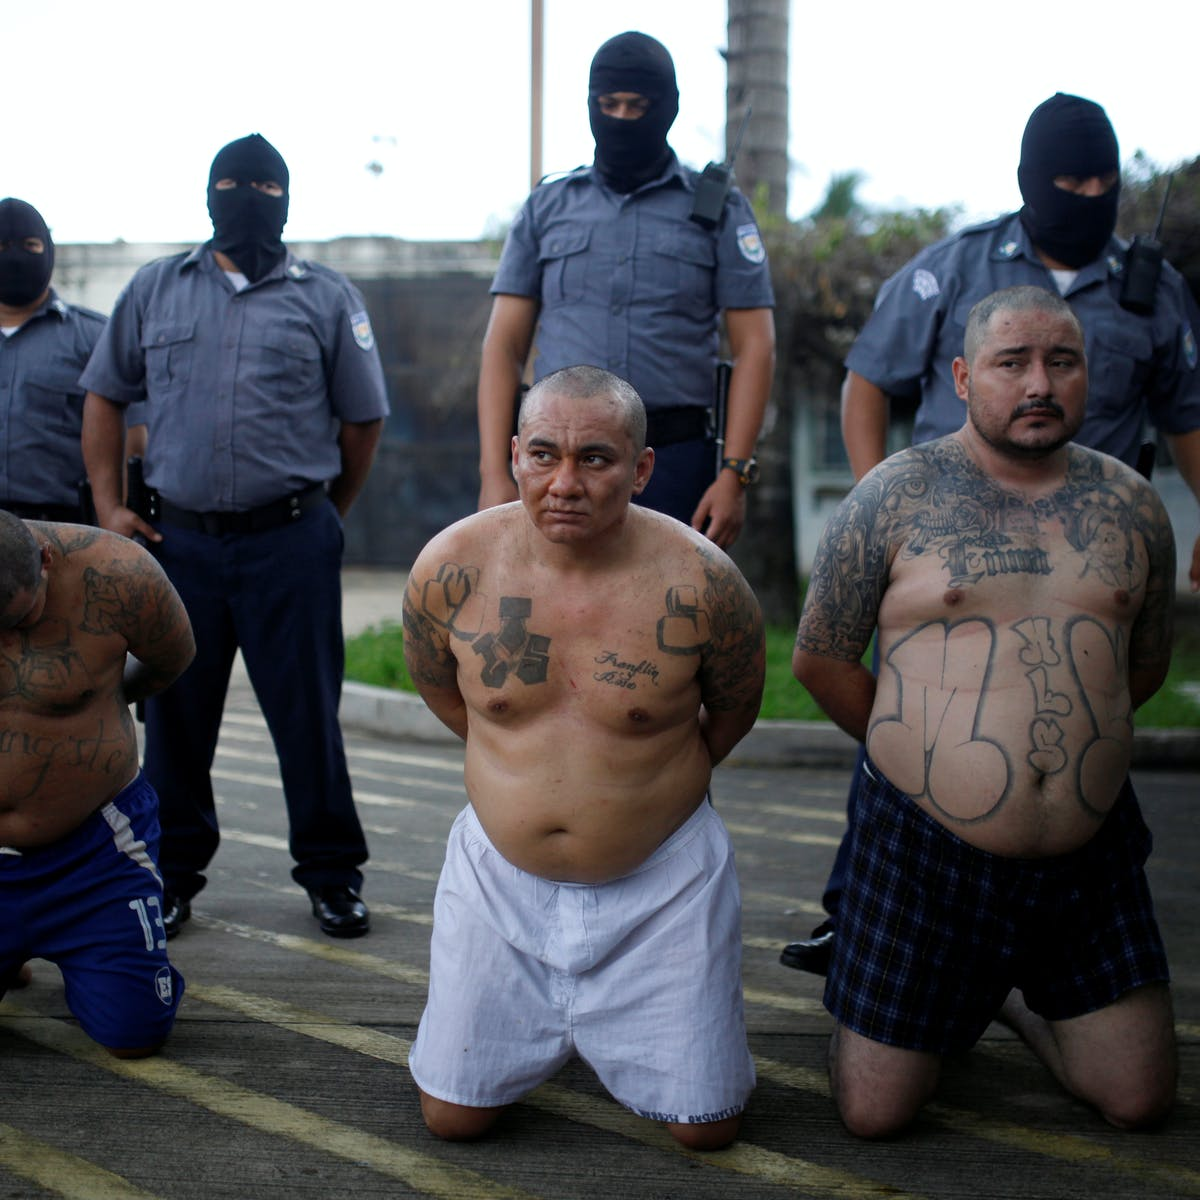 Why Is El Salvador So Dangerous 4 Essential Reads